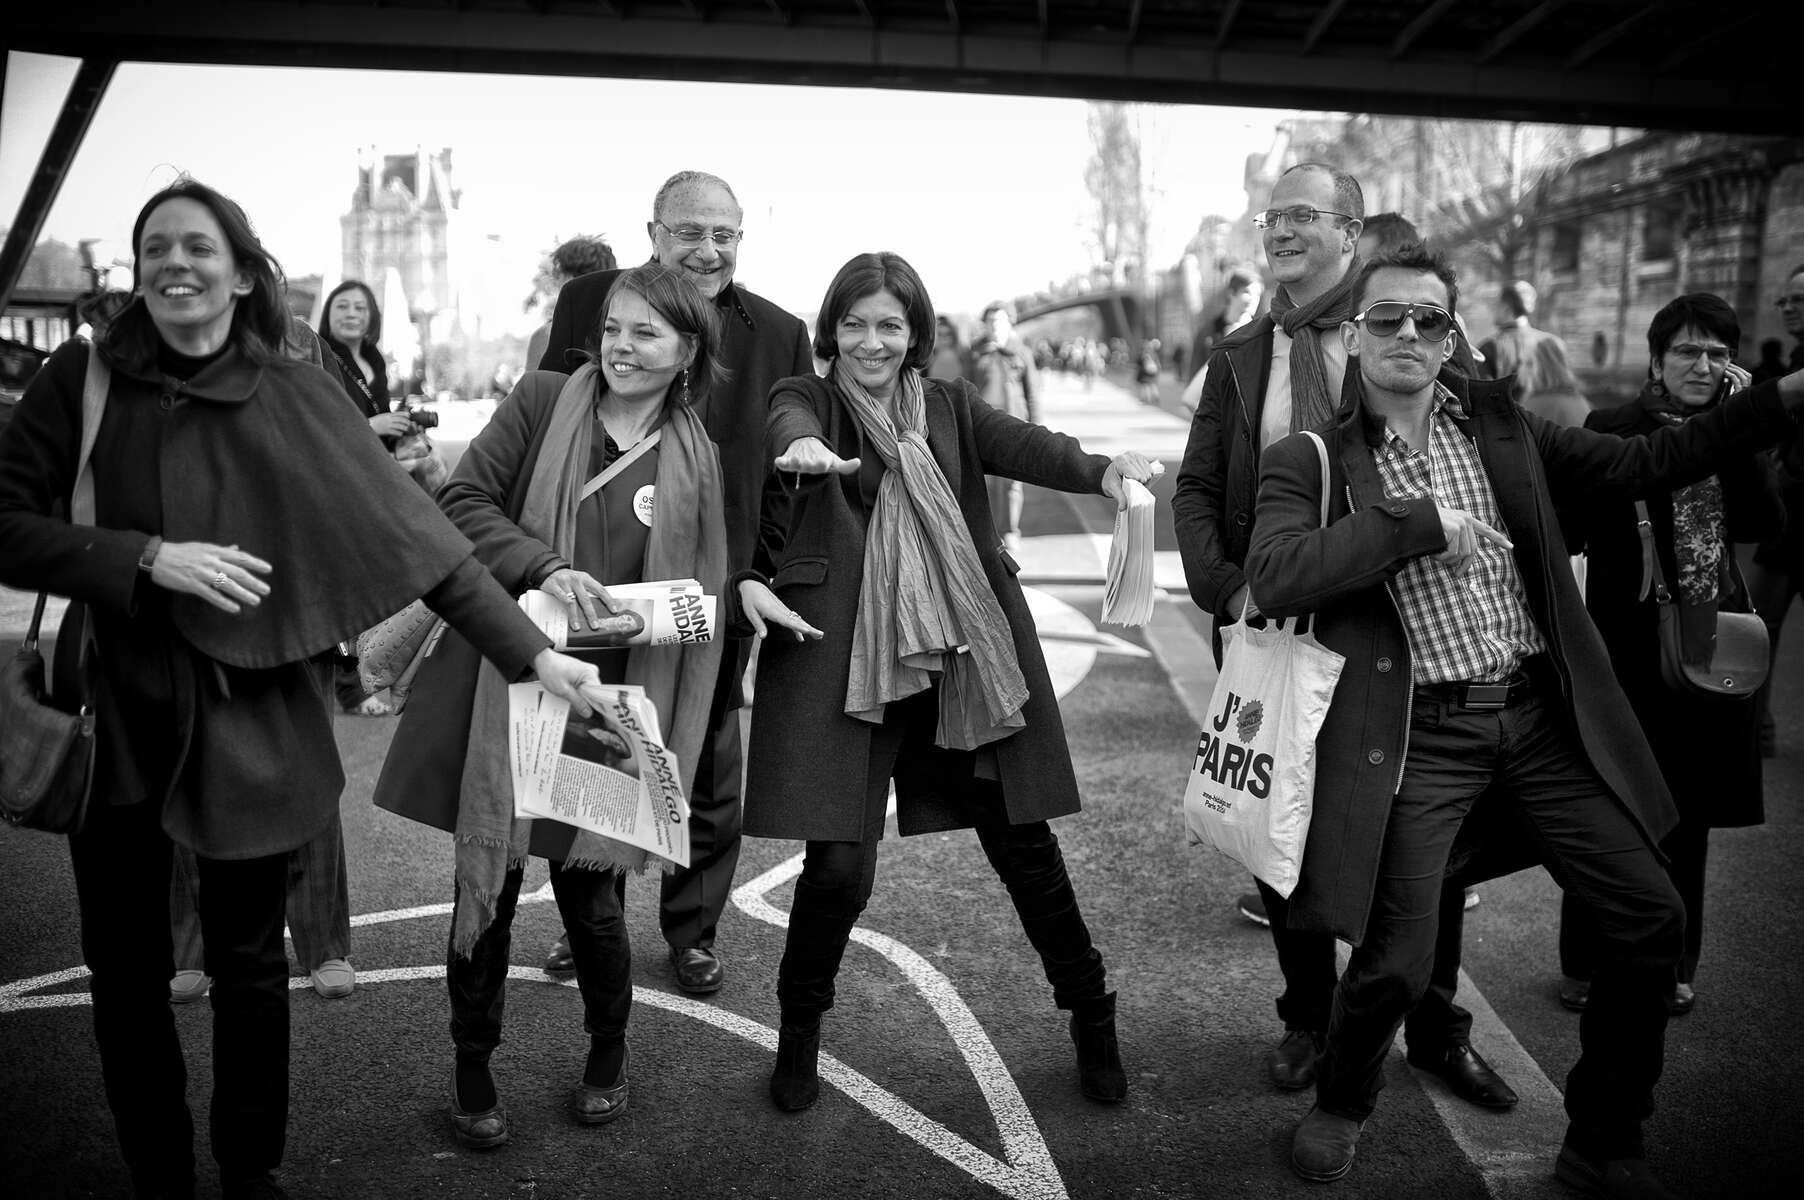 March 08, 2014.  PARIS, FRANCE-  Mayoral candidate Anne Hidalgo does a few dance steps with her staff near a section of the Seine that is holding a massive public Zumba class on International Women's Day.  For the first time in France's history, Paris will have a woman as a mayor - either Socialist Anne Hidalgo or Center-Right Nathalie Kosciusko-Morizet.  Photo by Scout Tufankjian